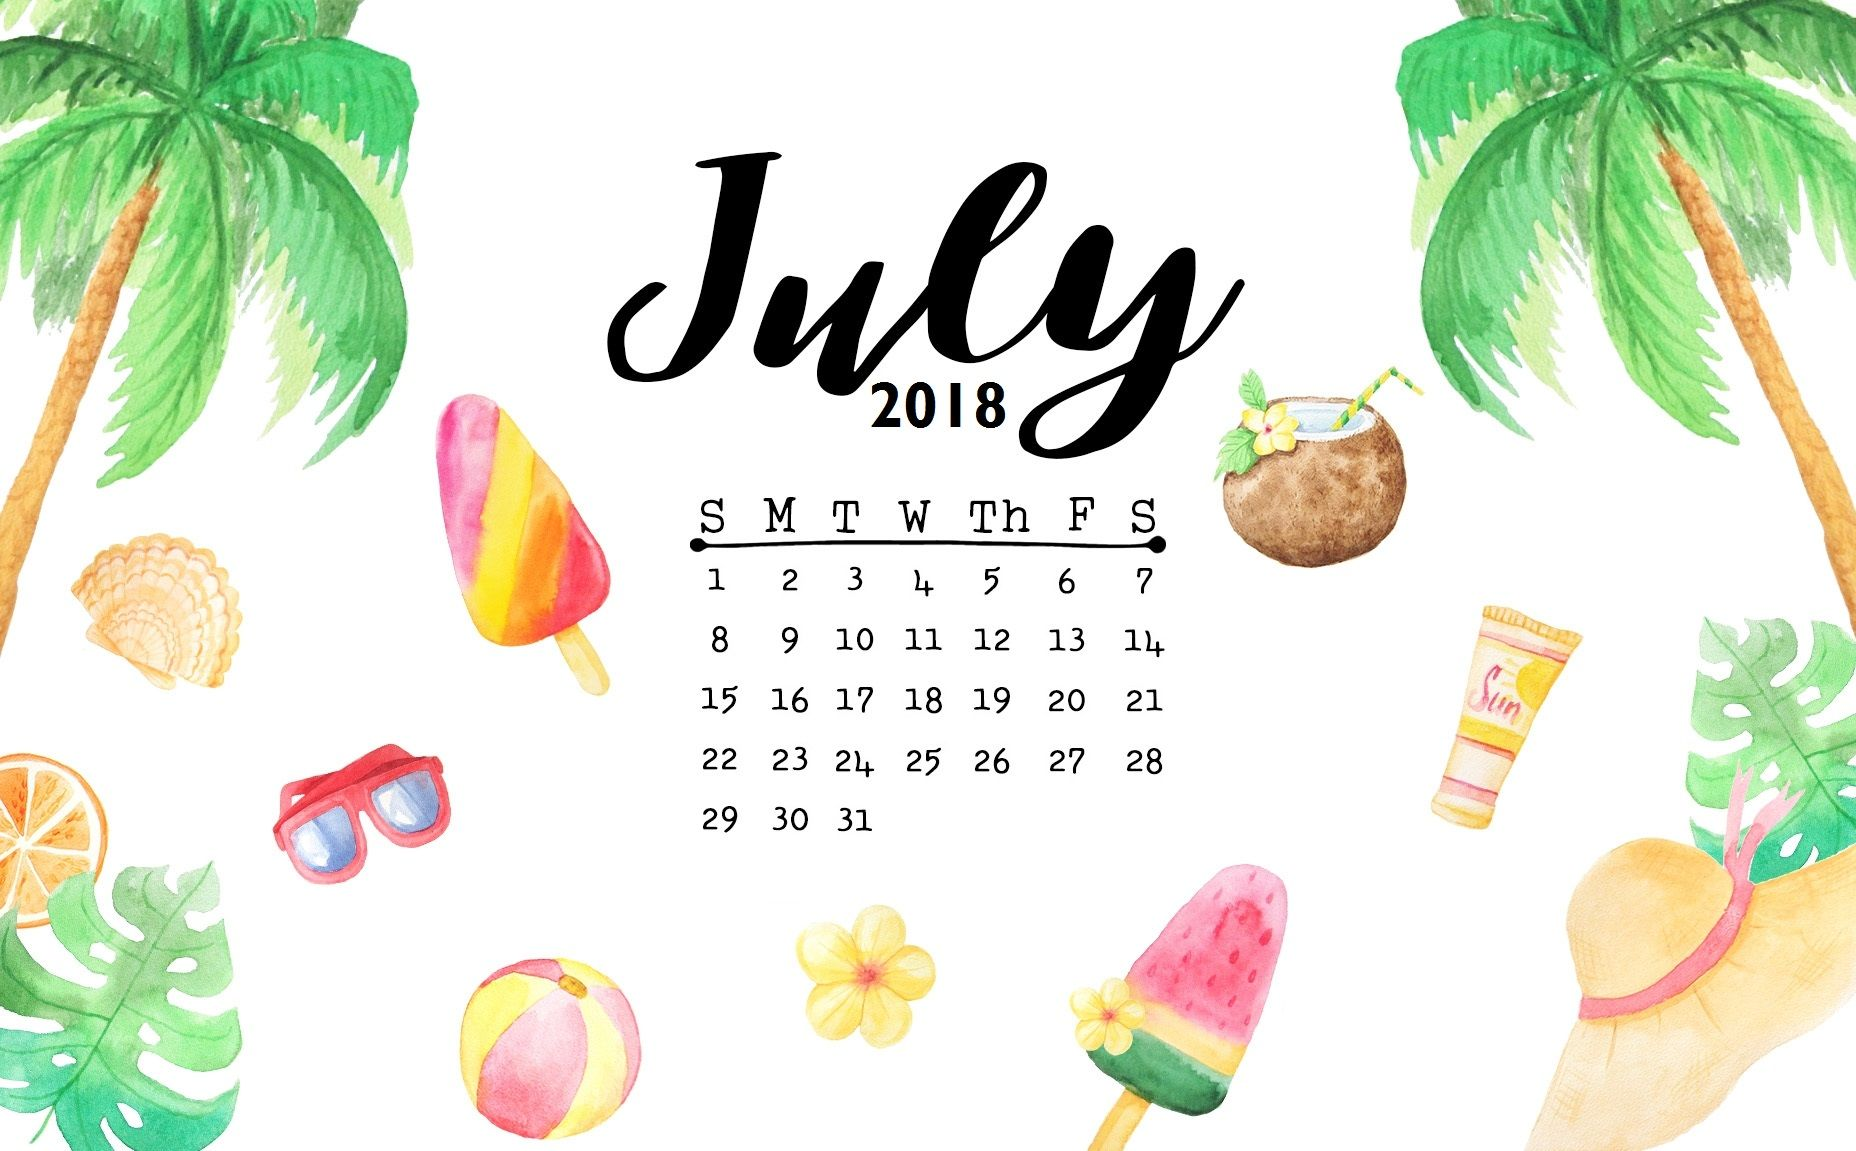 Cute July 2018 Calendar Wallpaper Jpg 1 856 215 1 151 Pixels